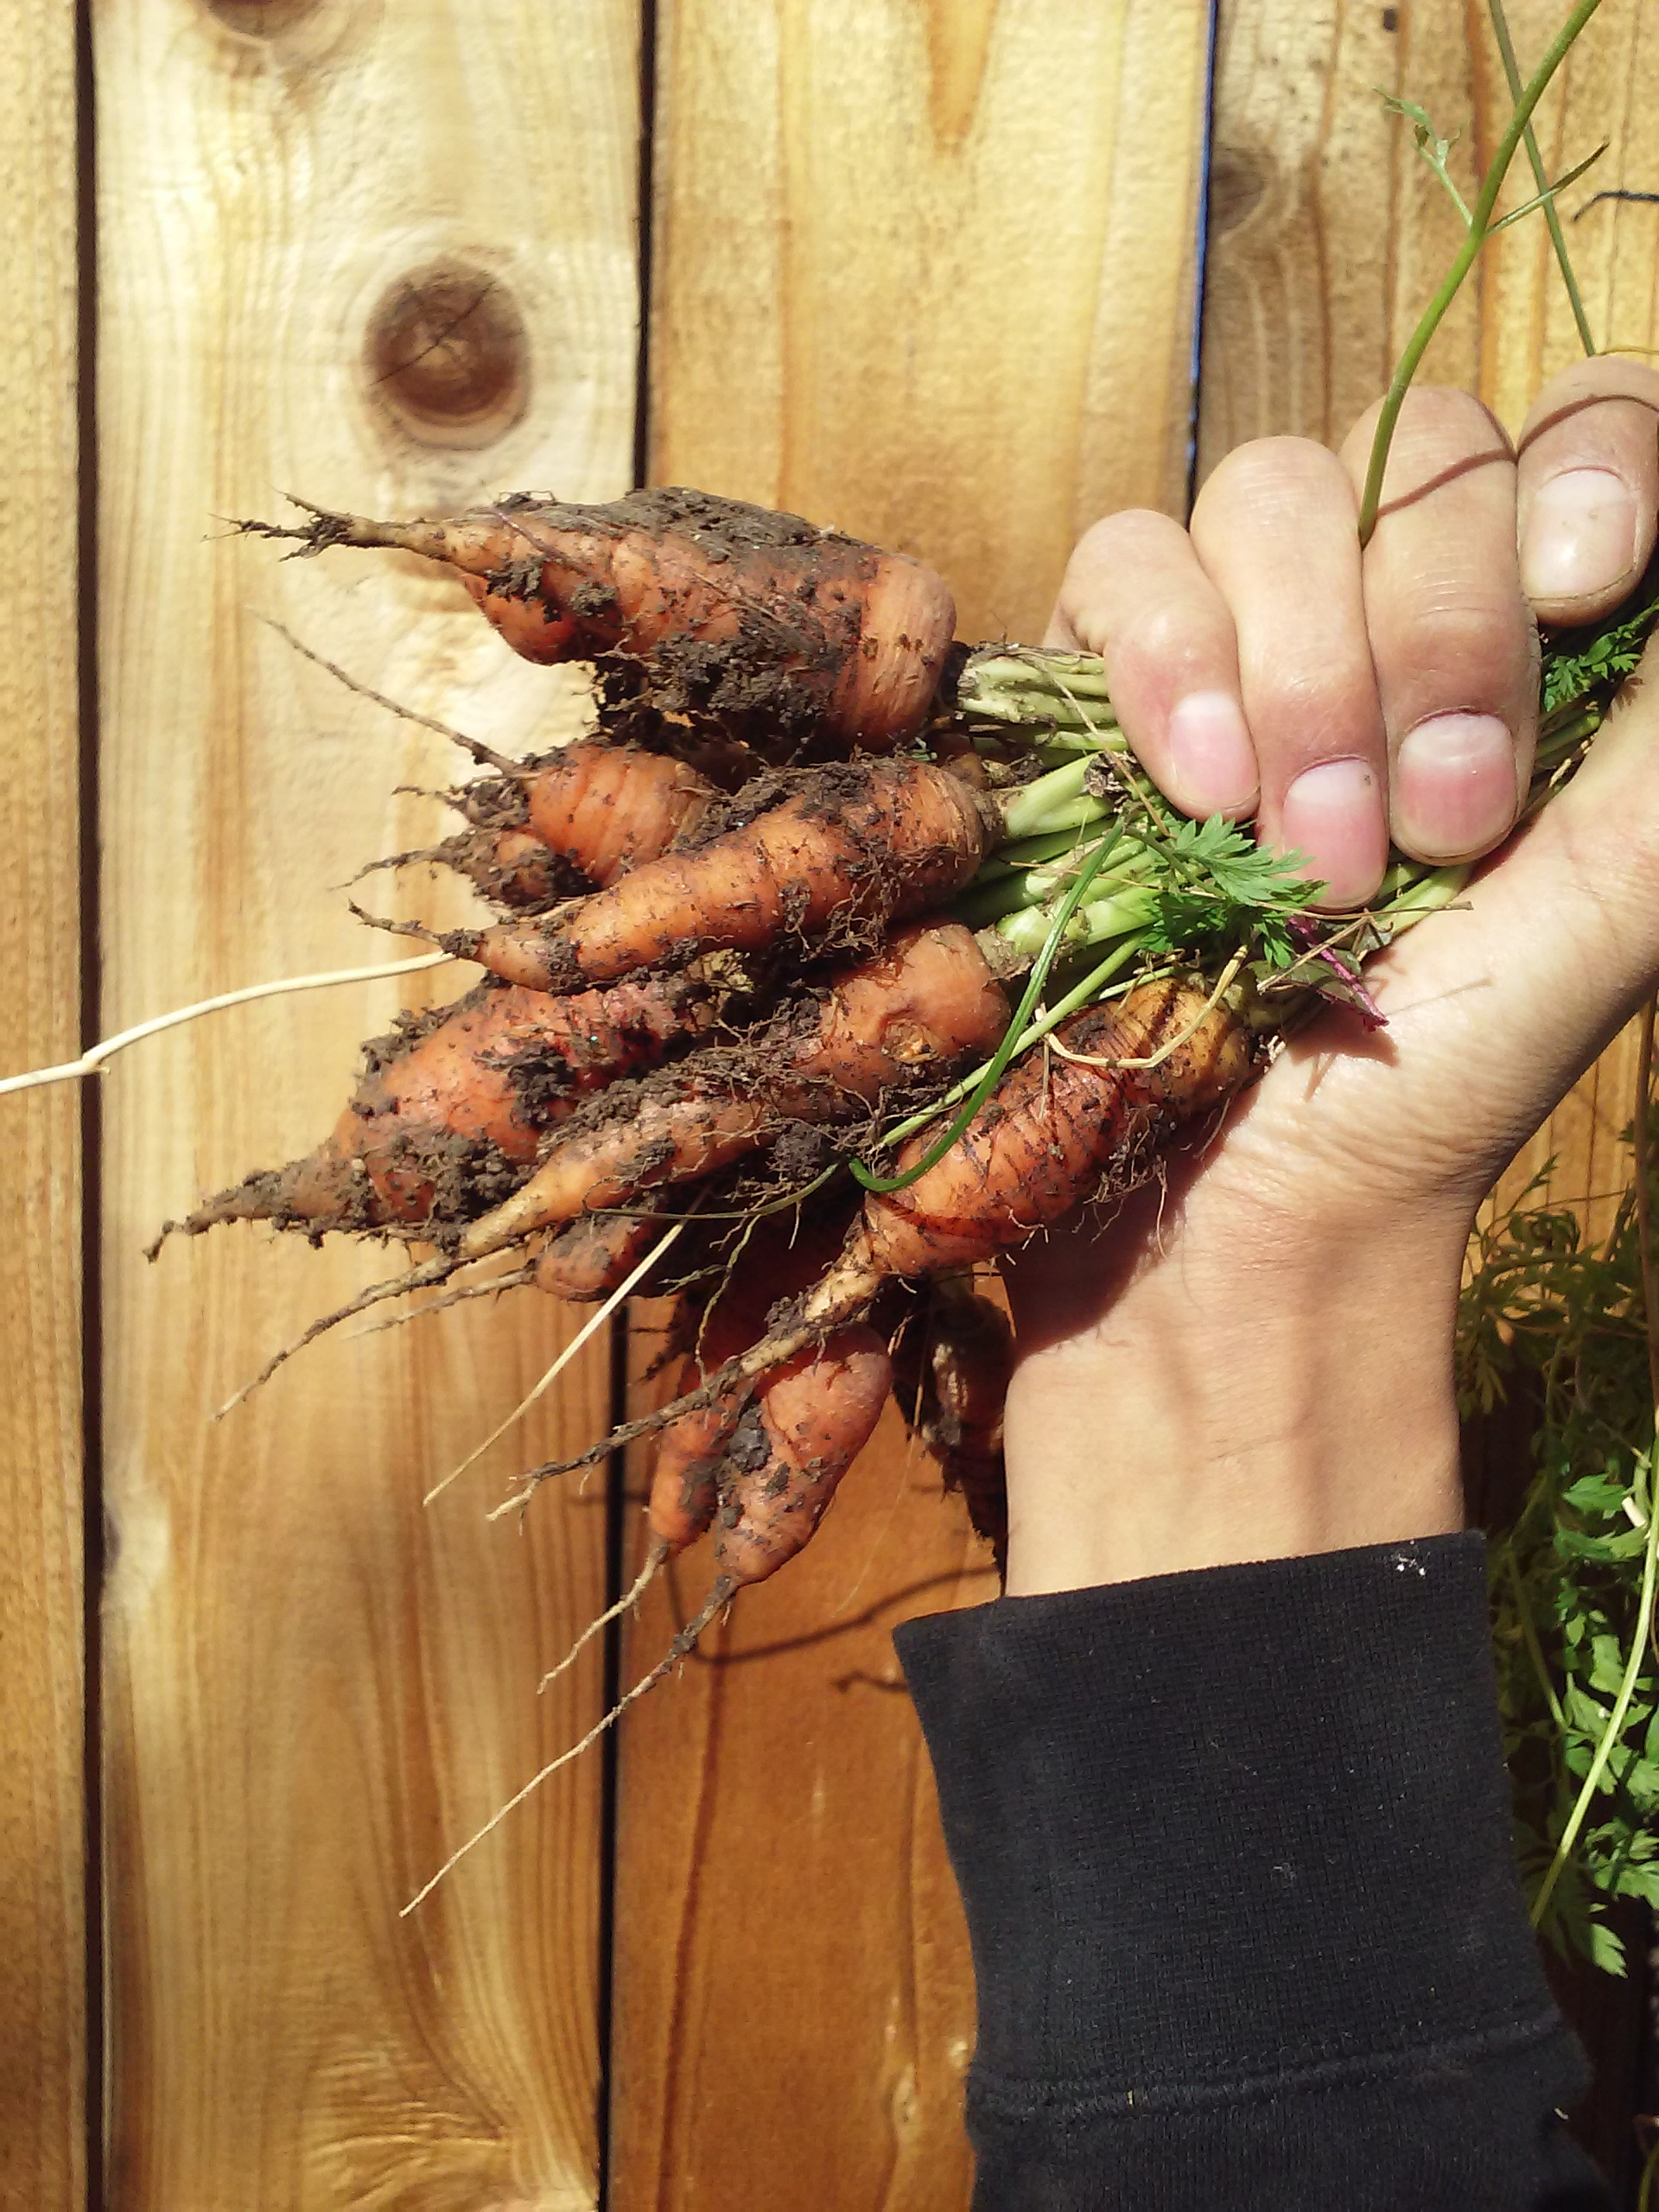 Featured Food: Carrots